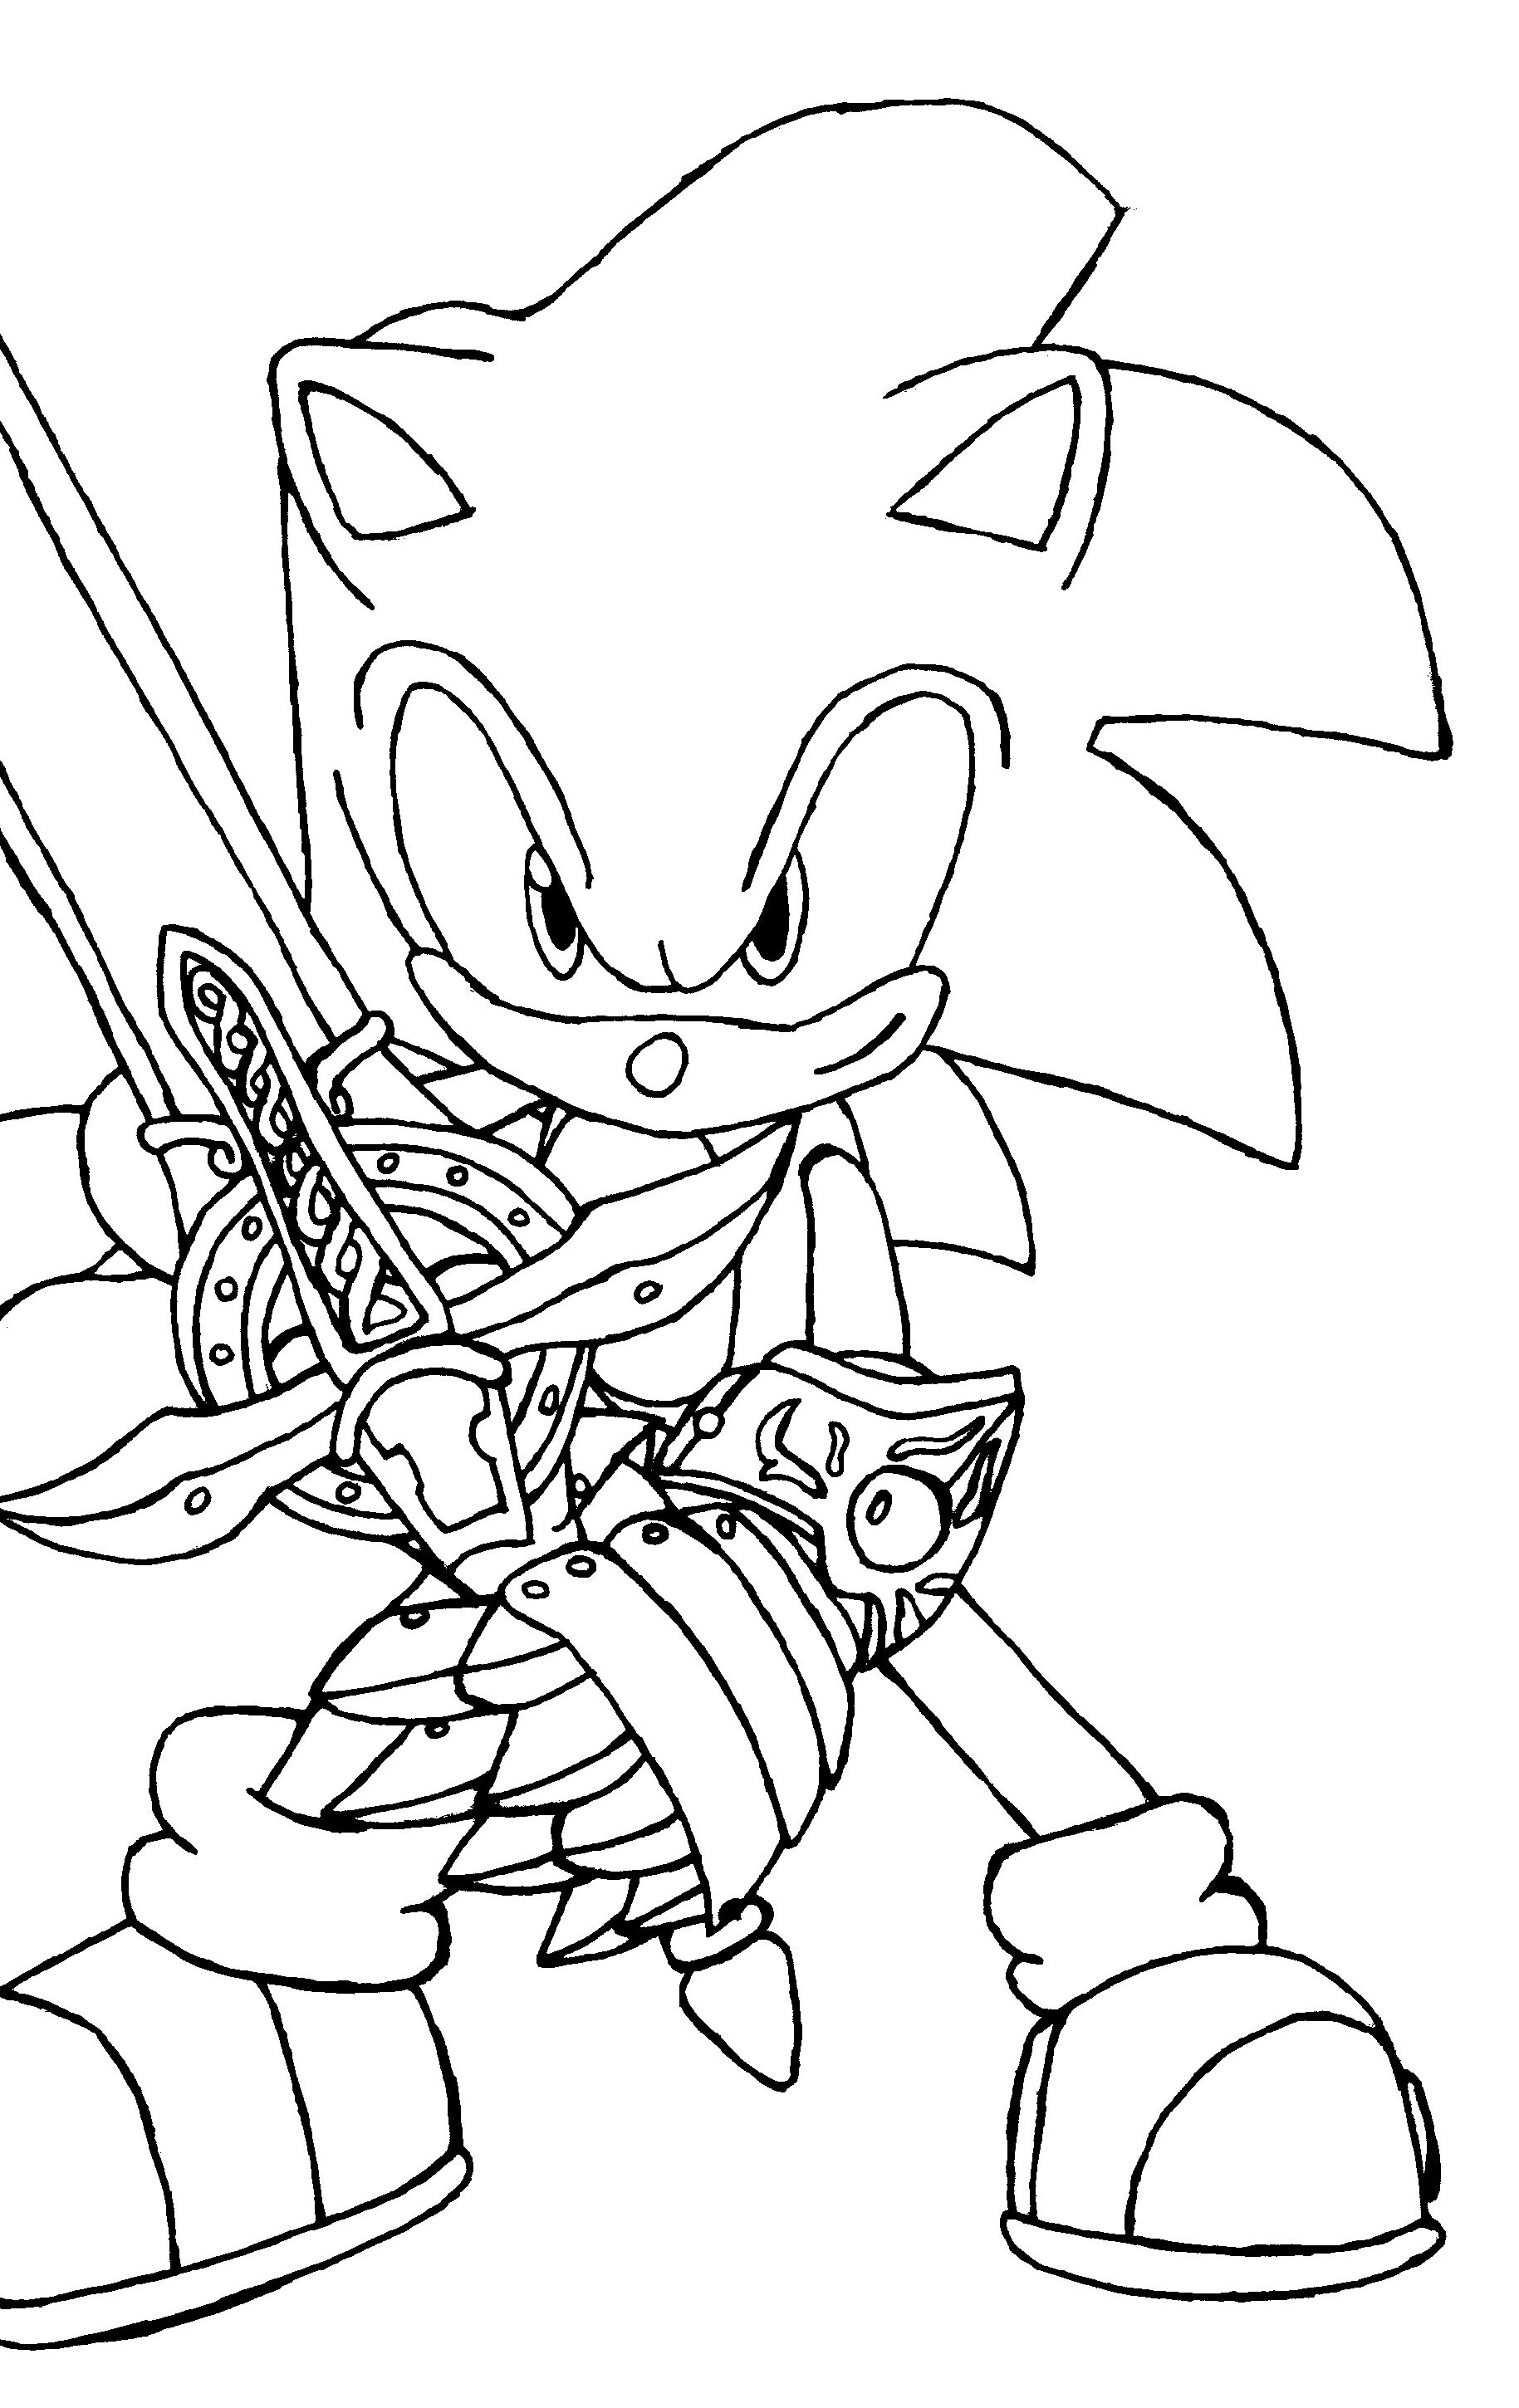 sonic the hedgehog printable coloring pages sonic the hedgehog coloring pages to download and print sonic pages coloring printable hedgehog the